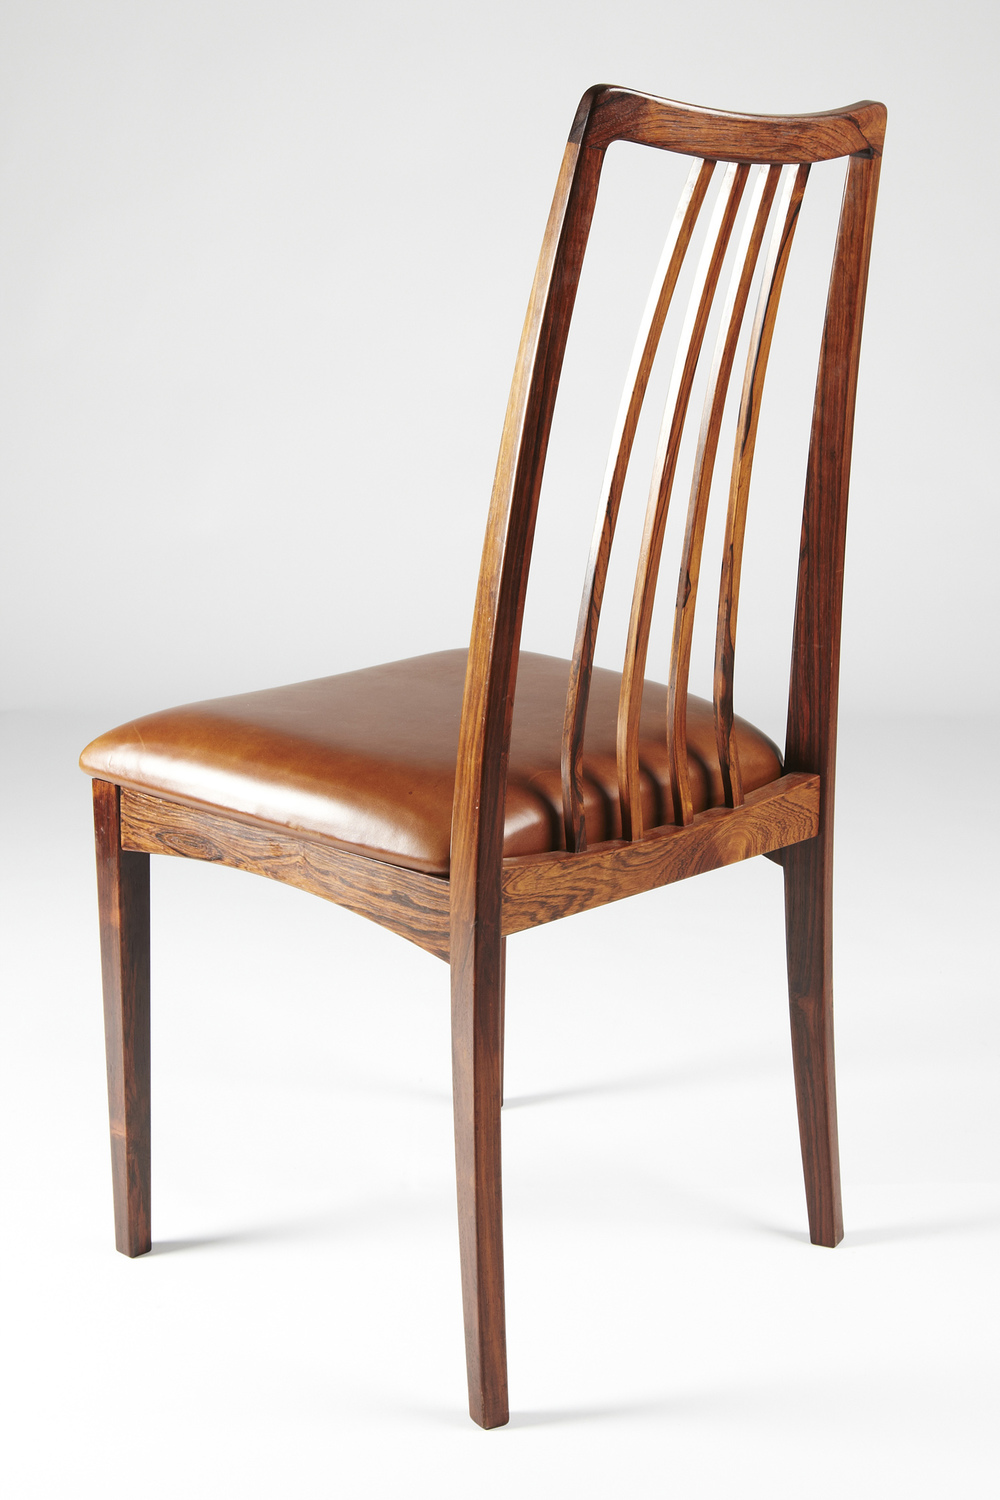 Koefoed 1959 dining chair4_resize.jpg